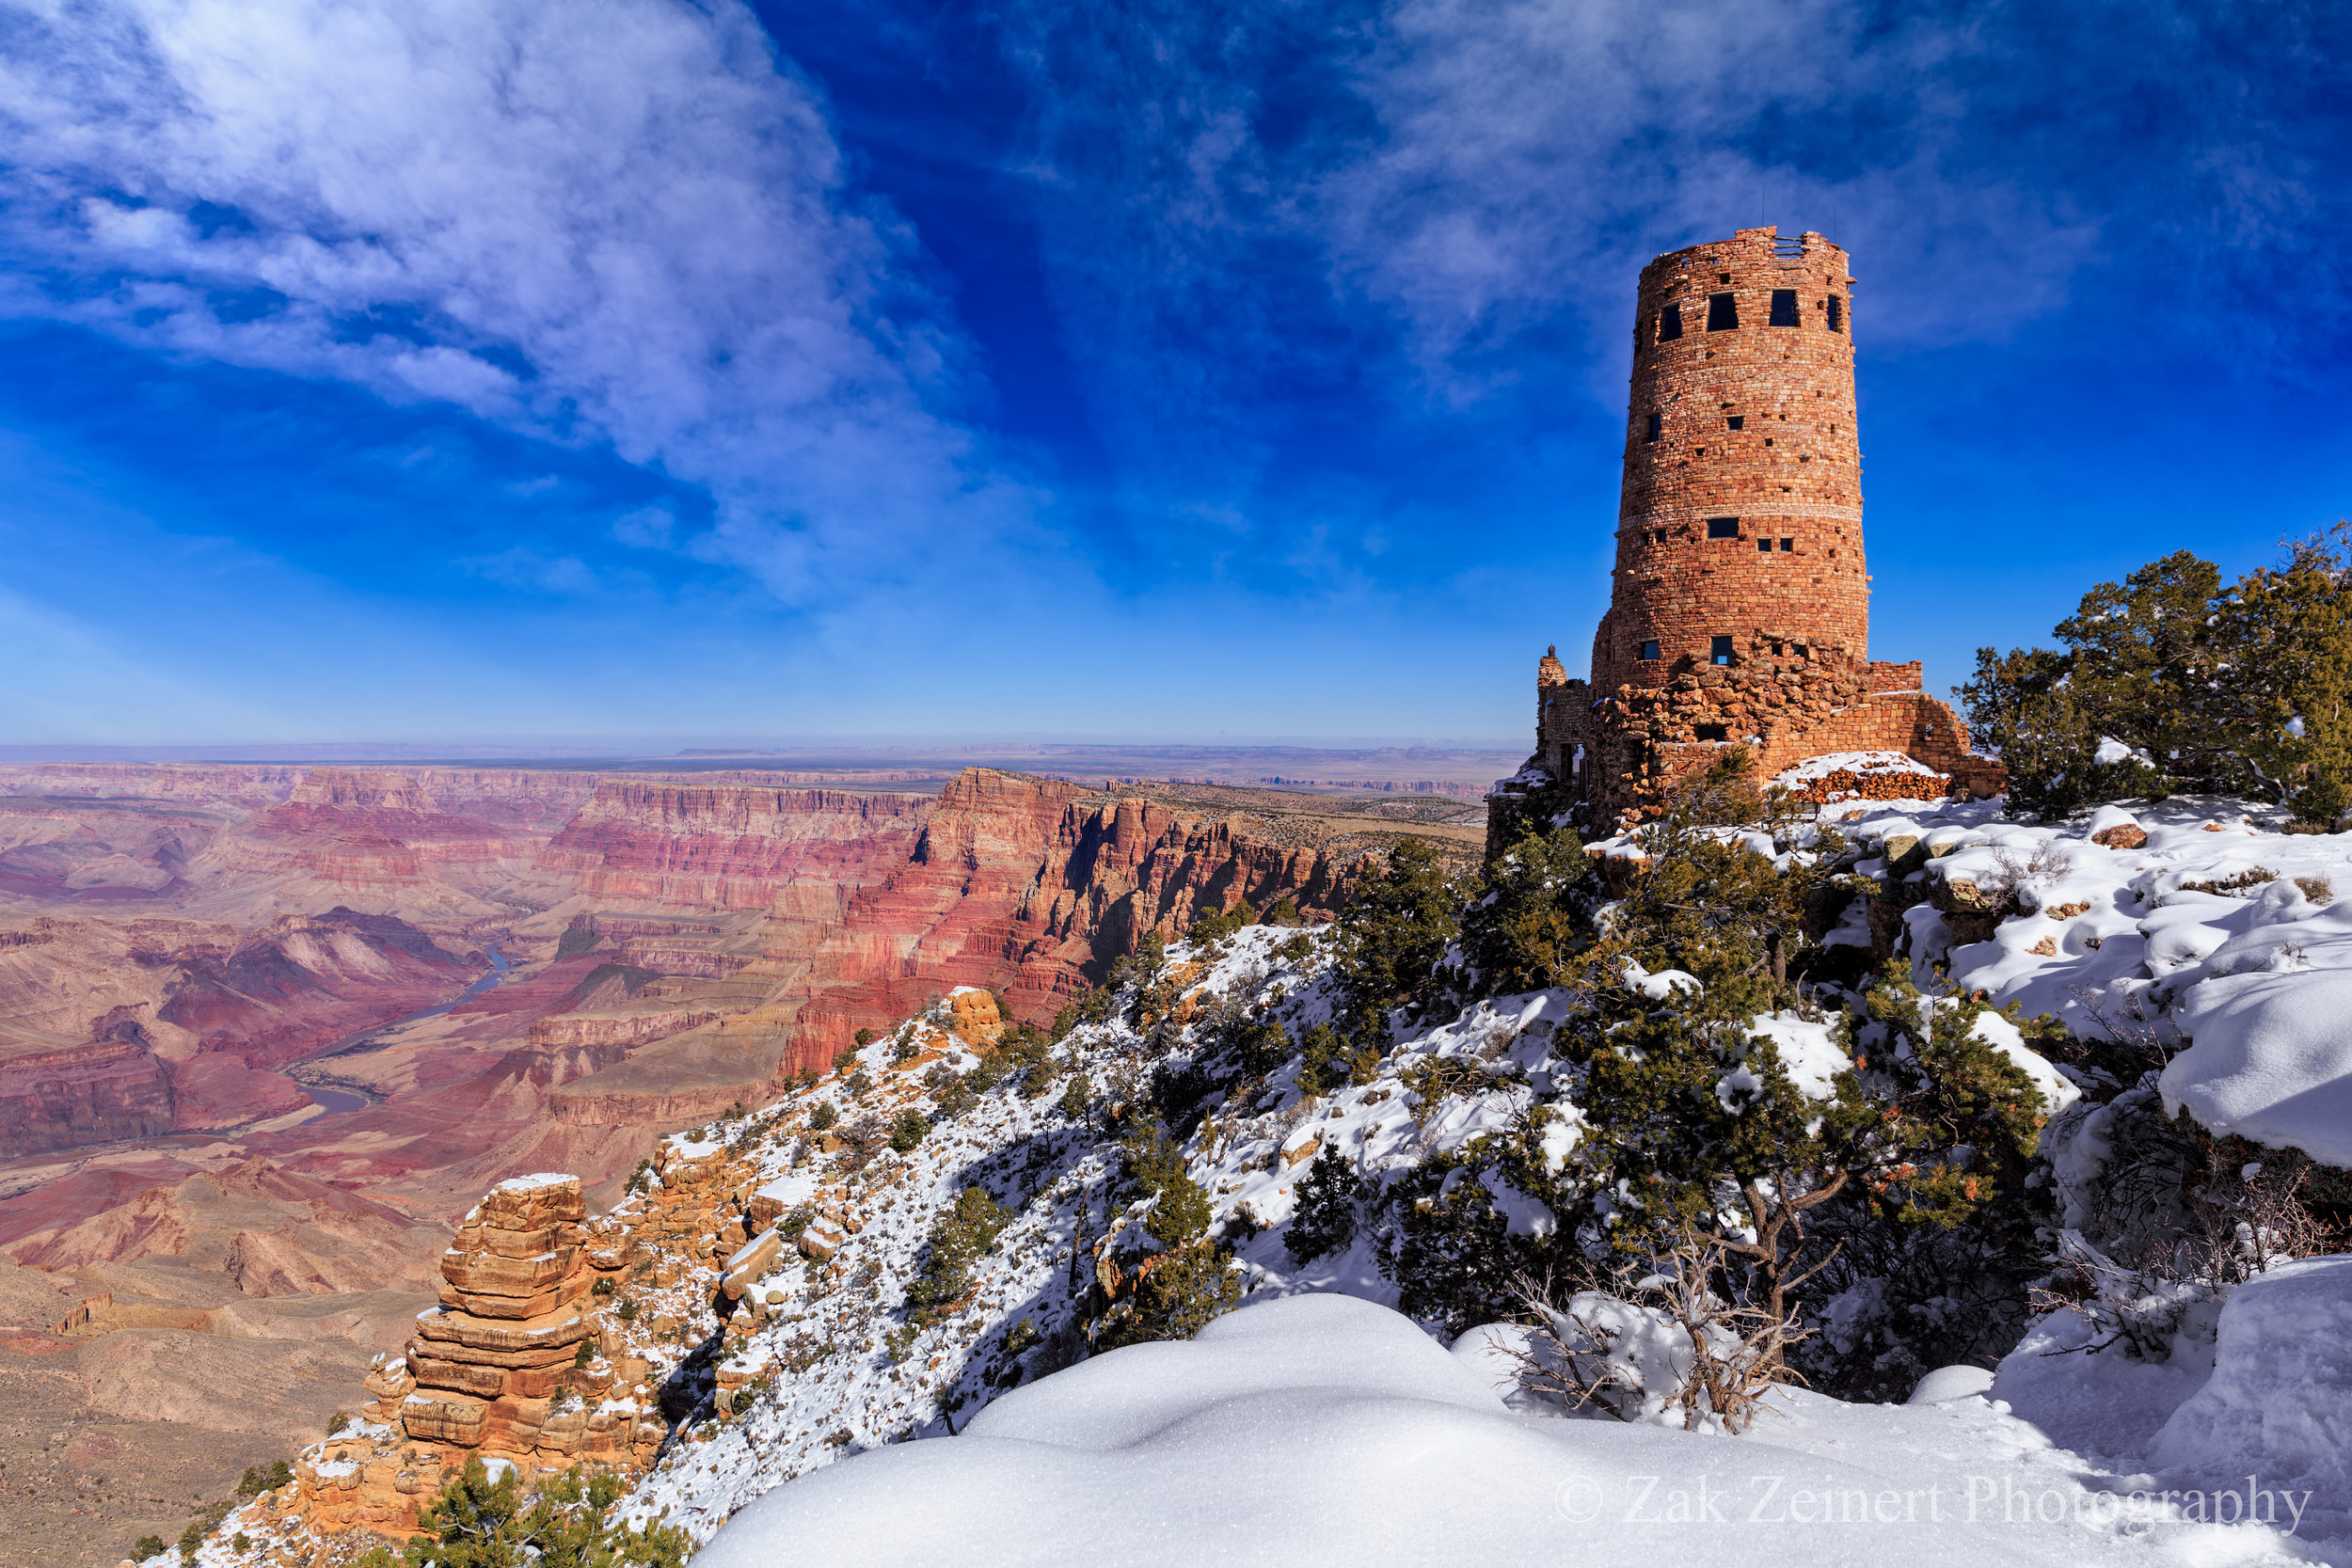 Desert View Watchtower at the Grand Canyon